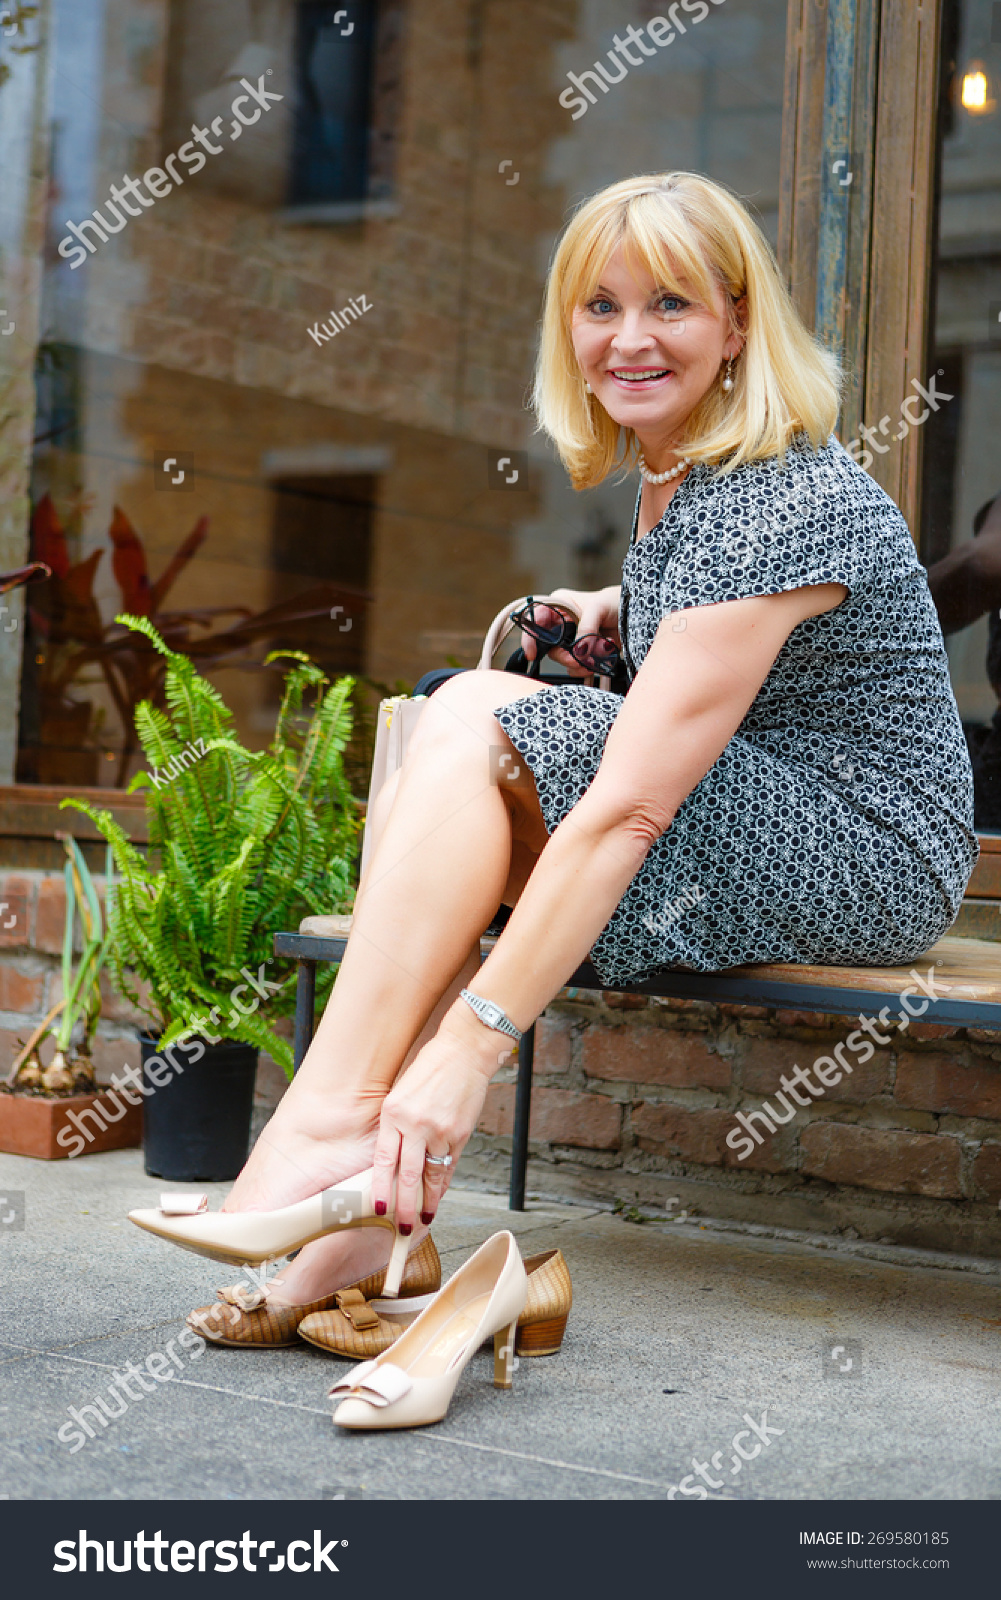 Shoes for 60 Year Old Woman